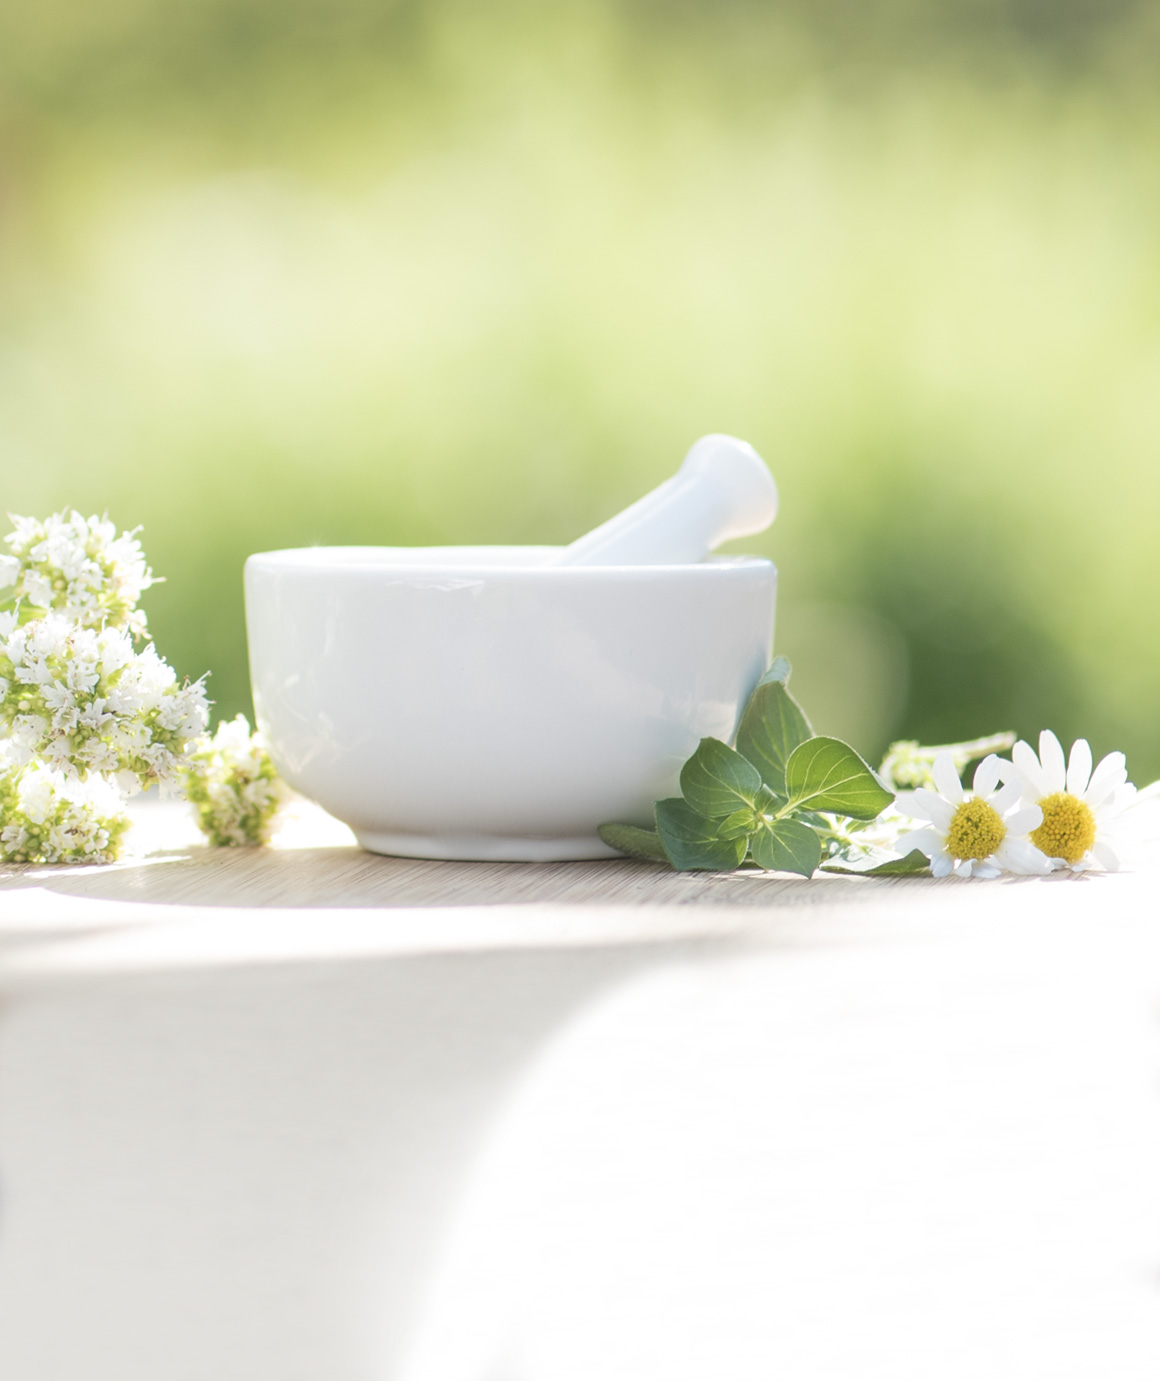 Image of mortar and pestle with Chamomile and Oregano.